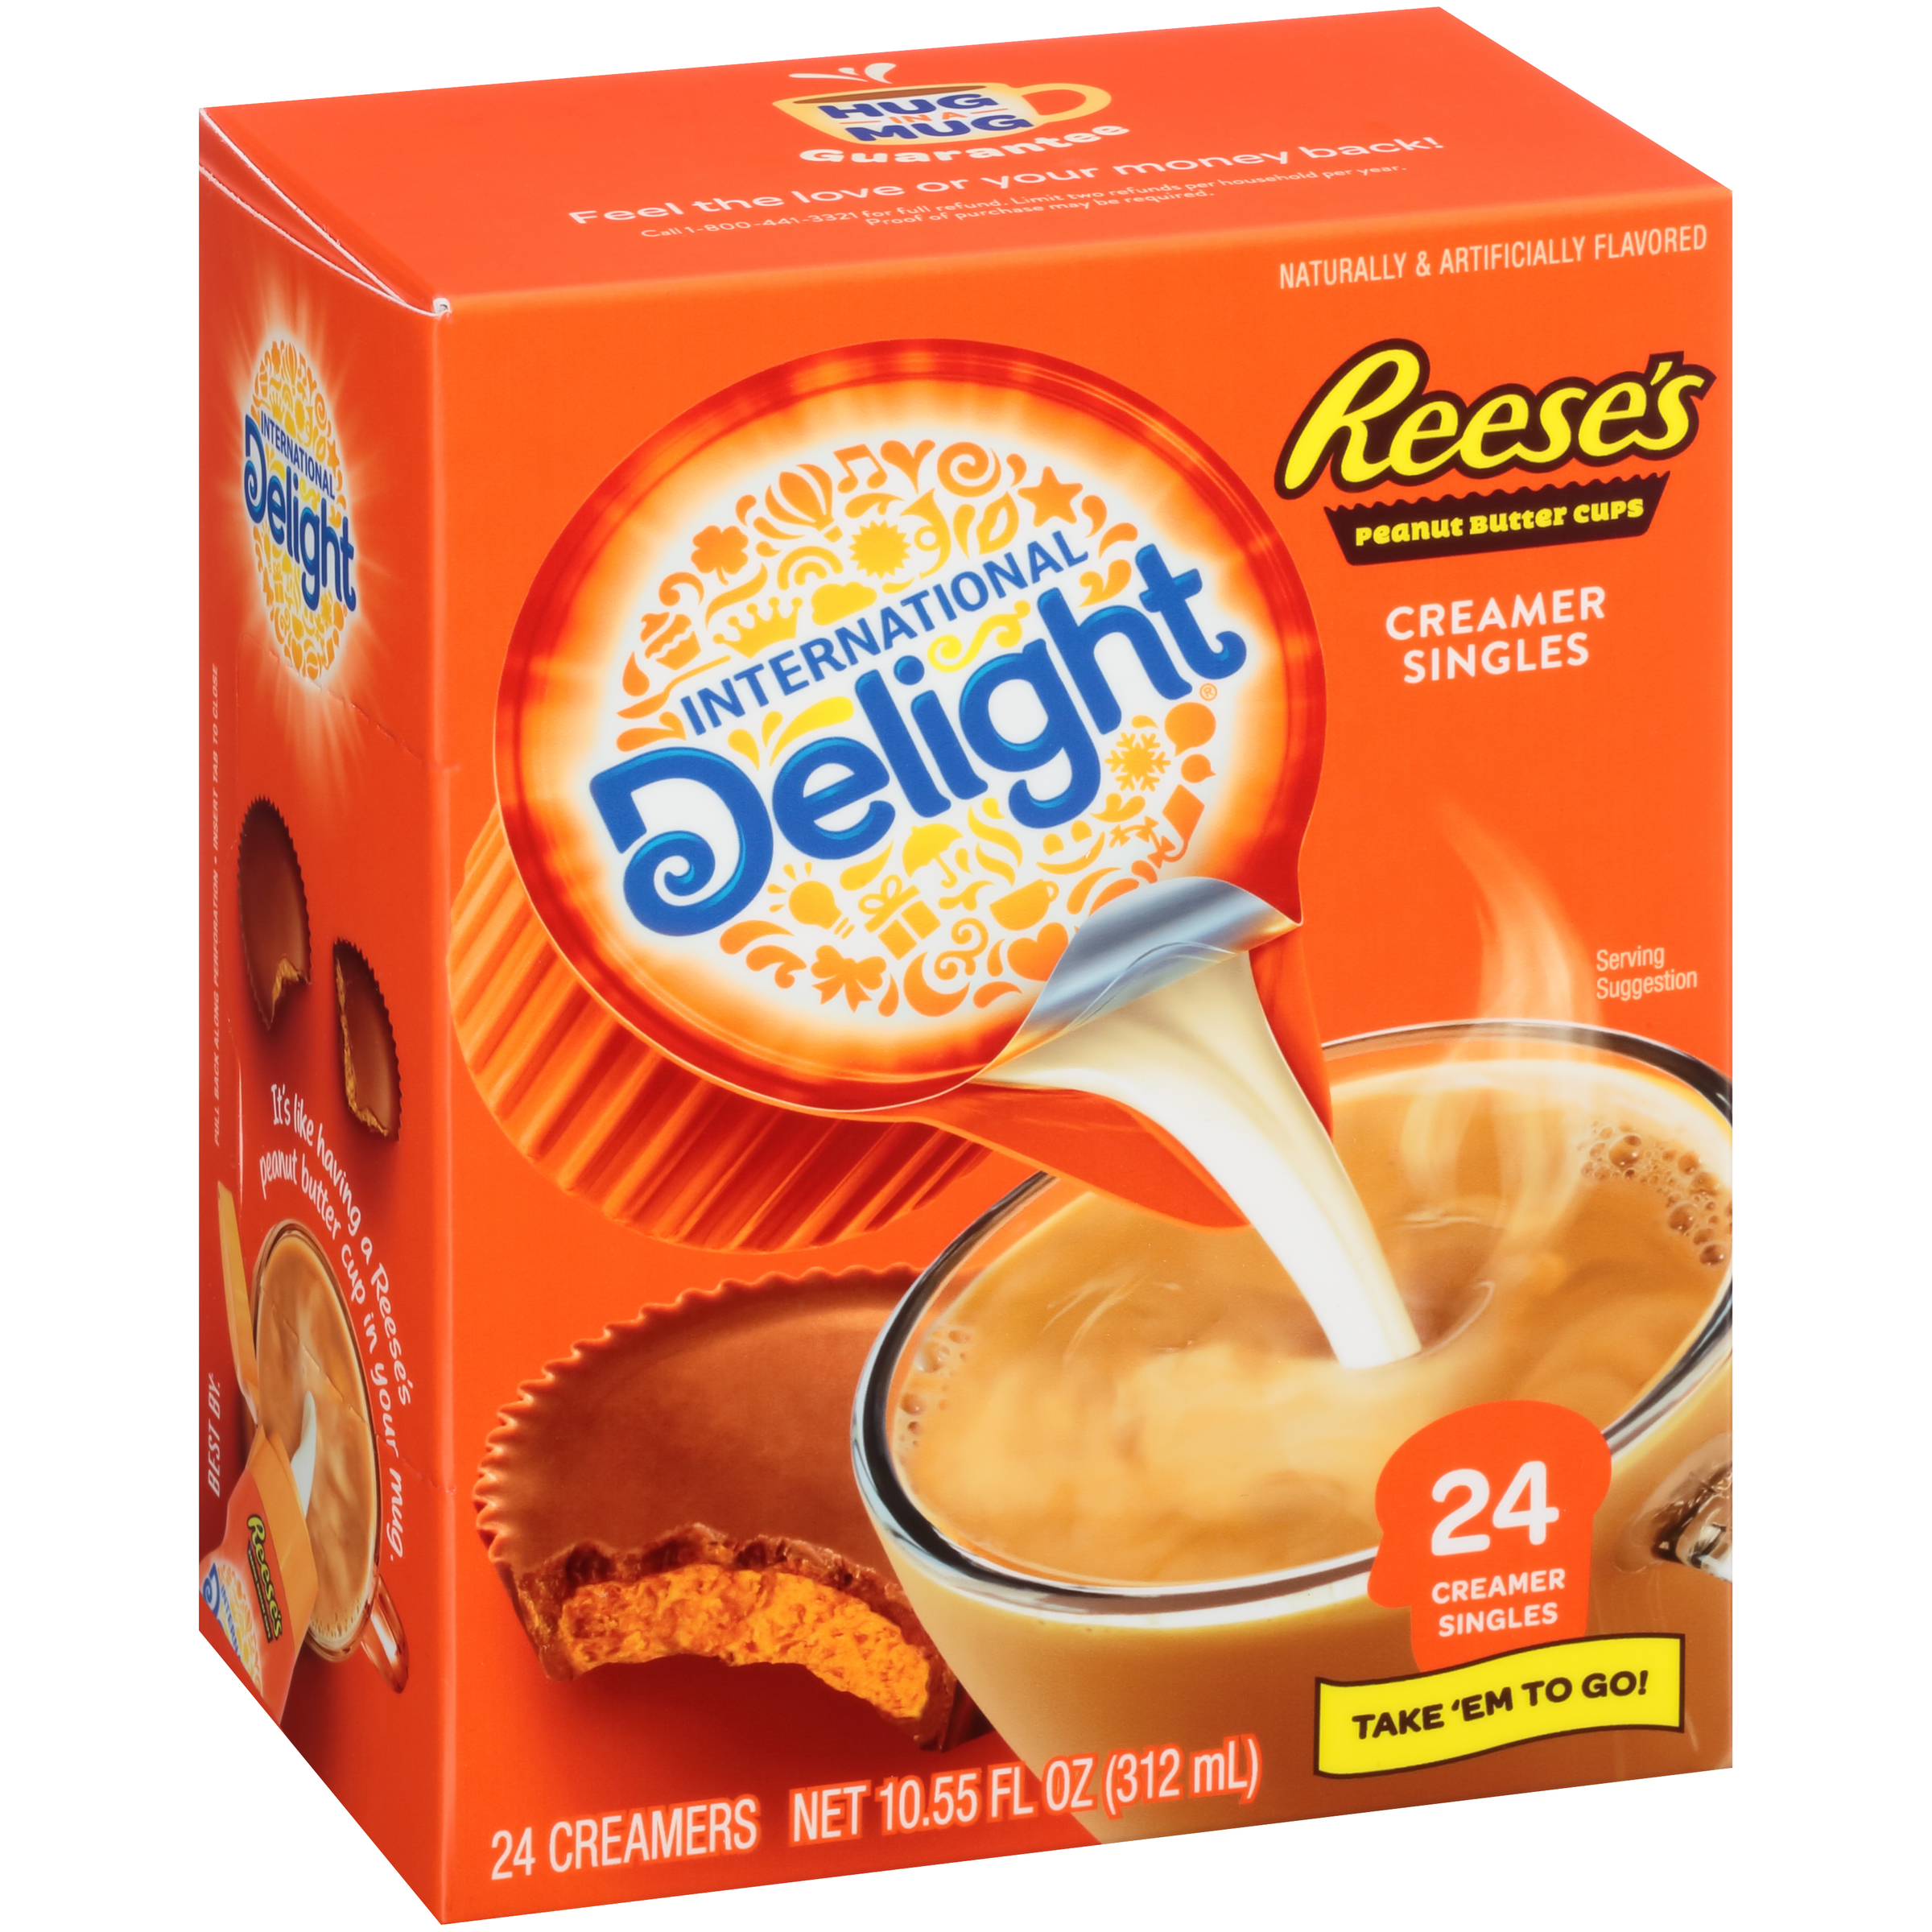 International Delight Reese's Peanut Butter Cup Creamers, 24 Ct